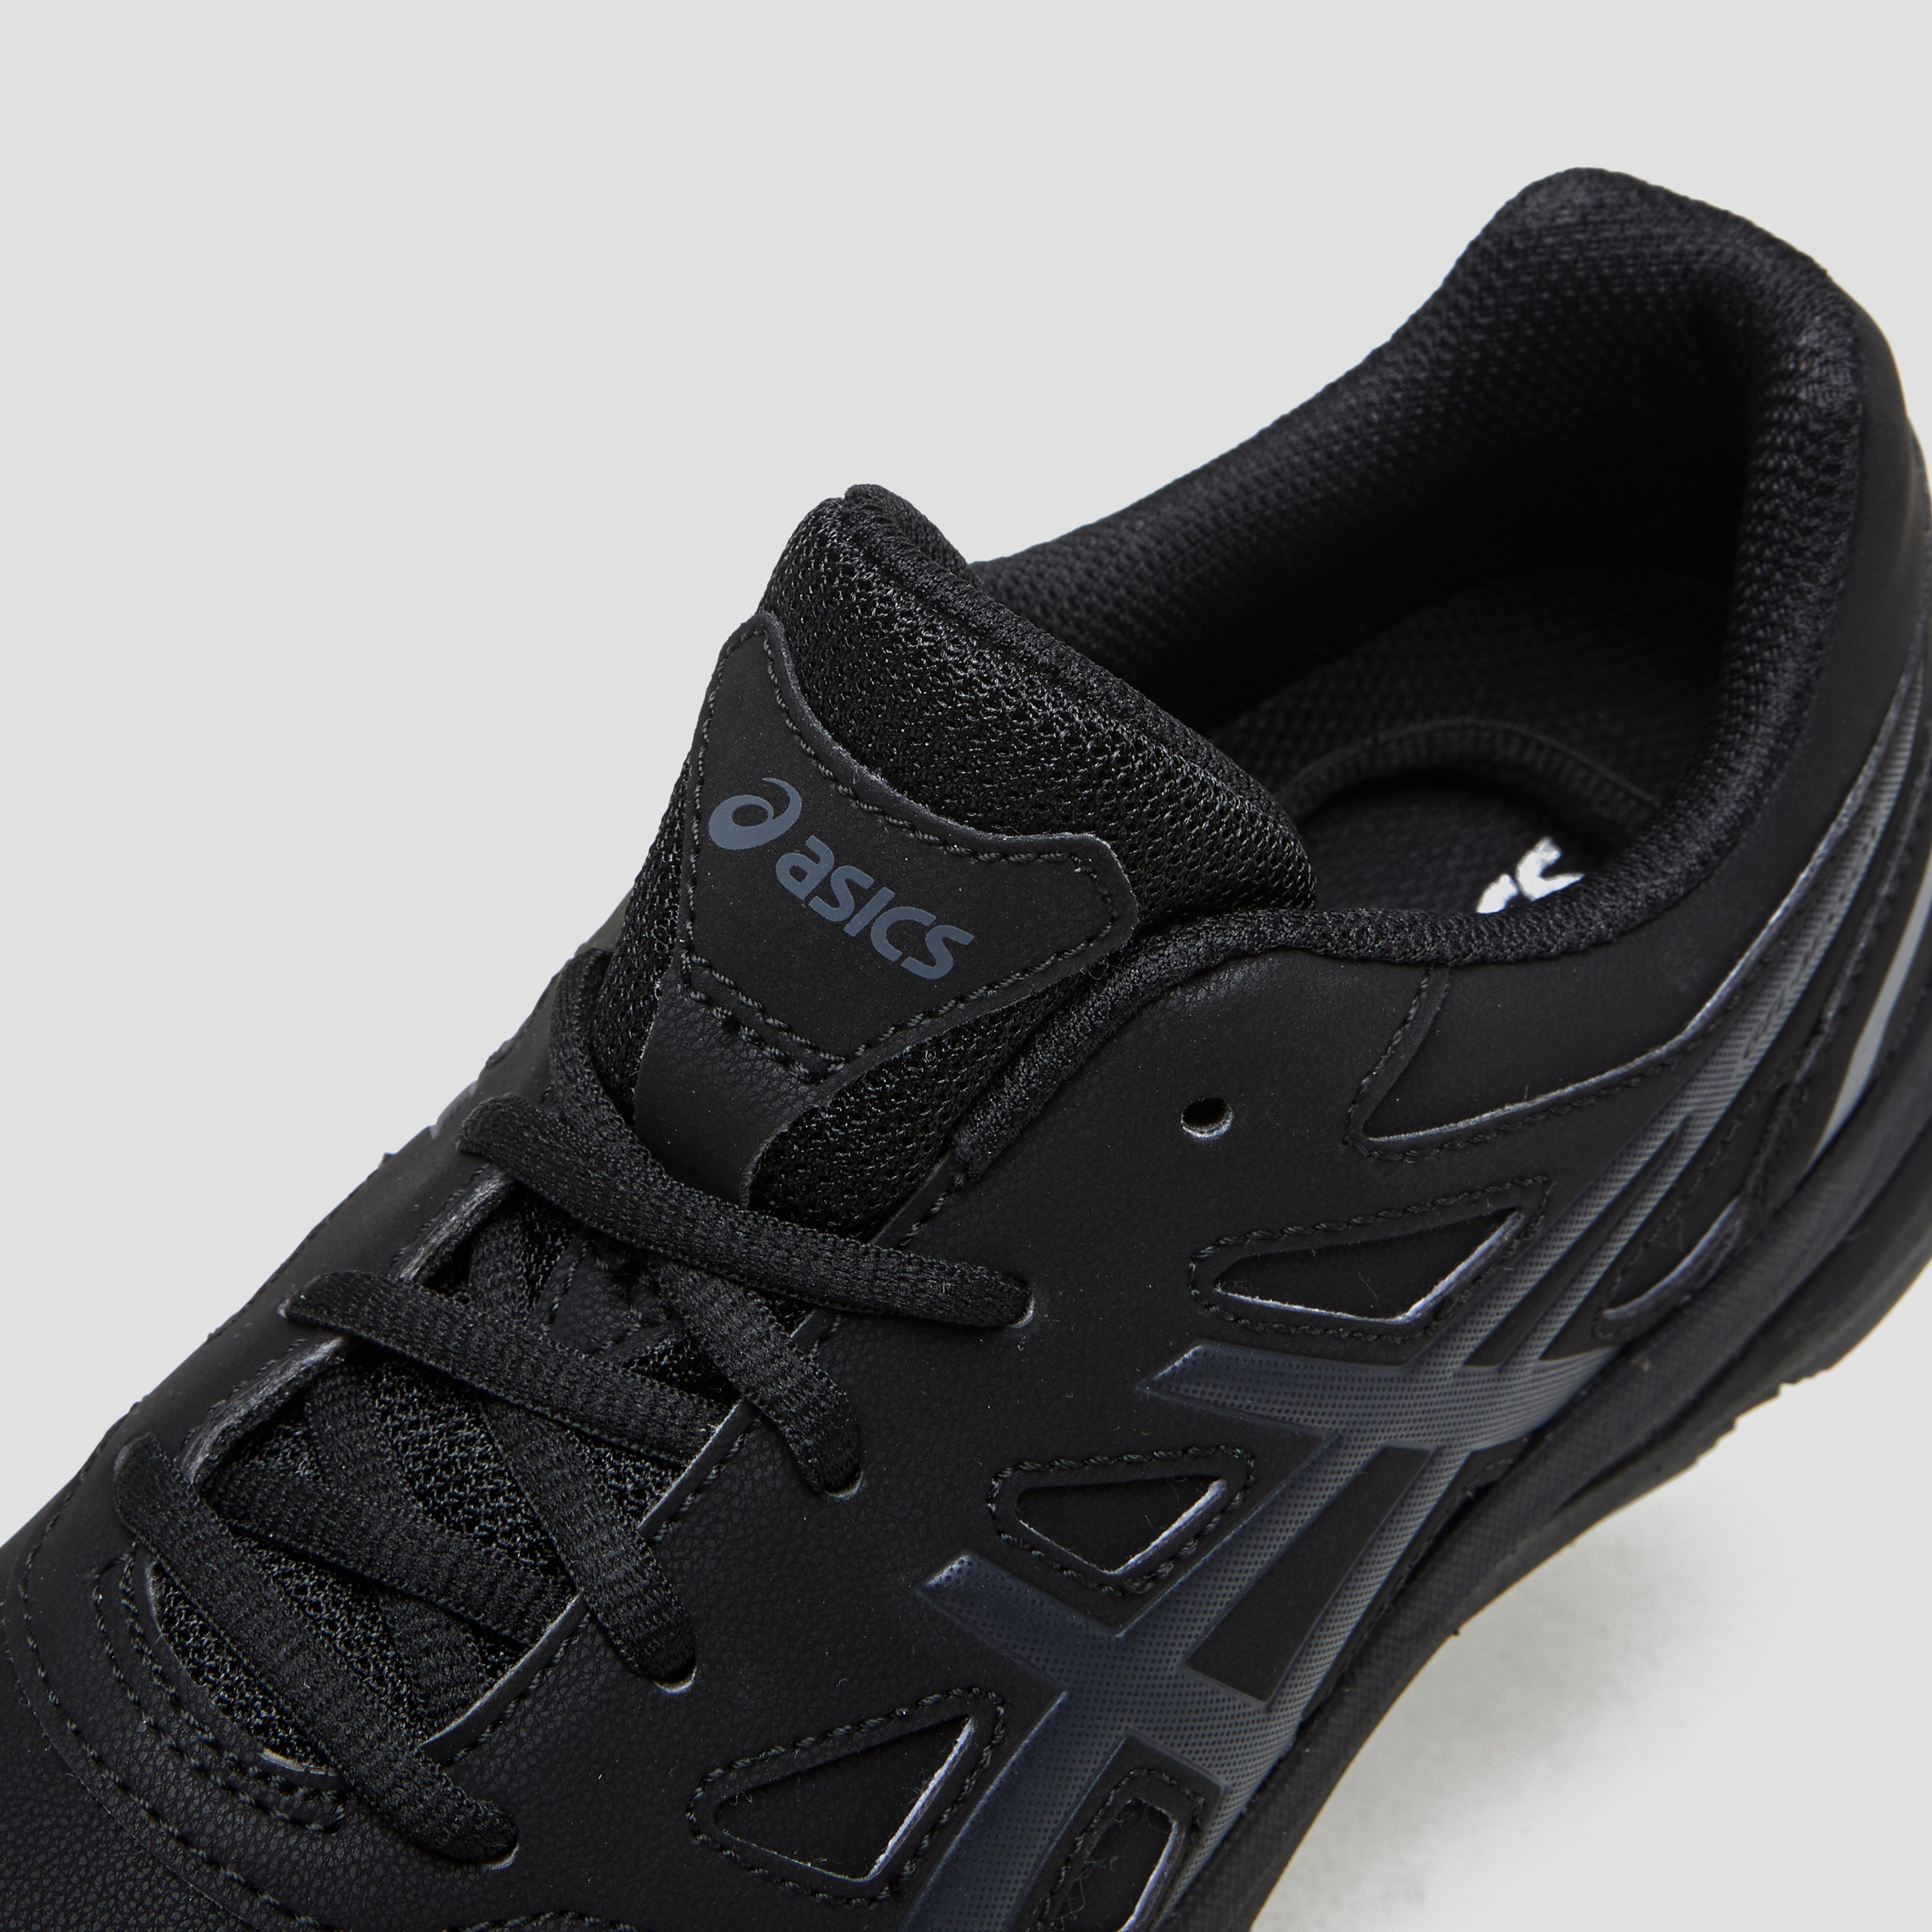 ASICS GEL-MISSION 3 TRAILSCHOENEN ZWART DAMES